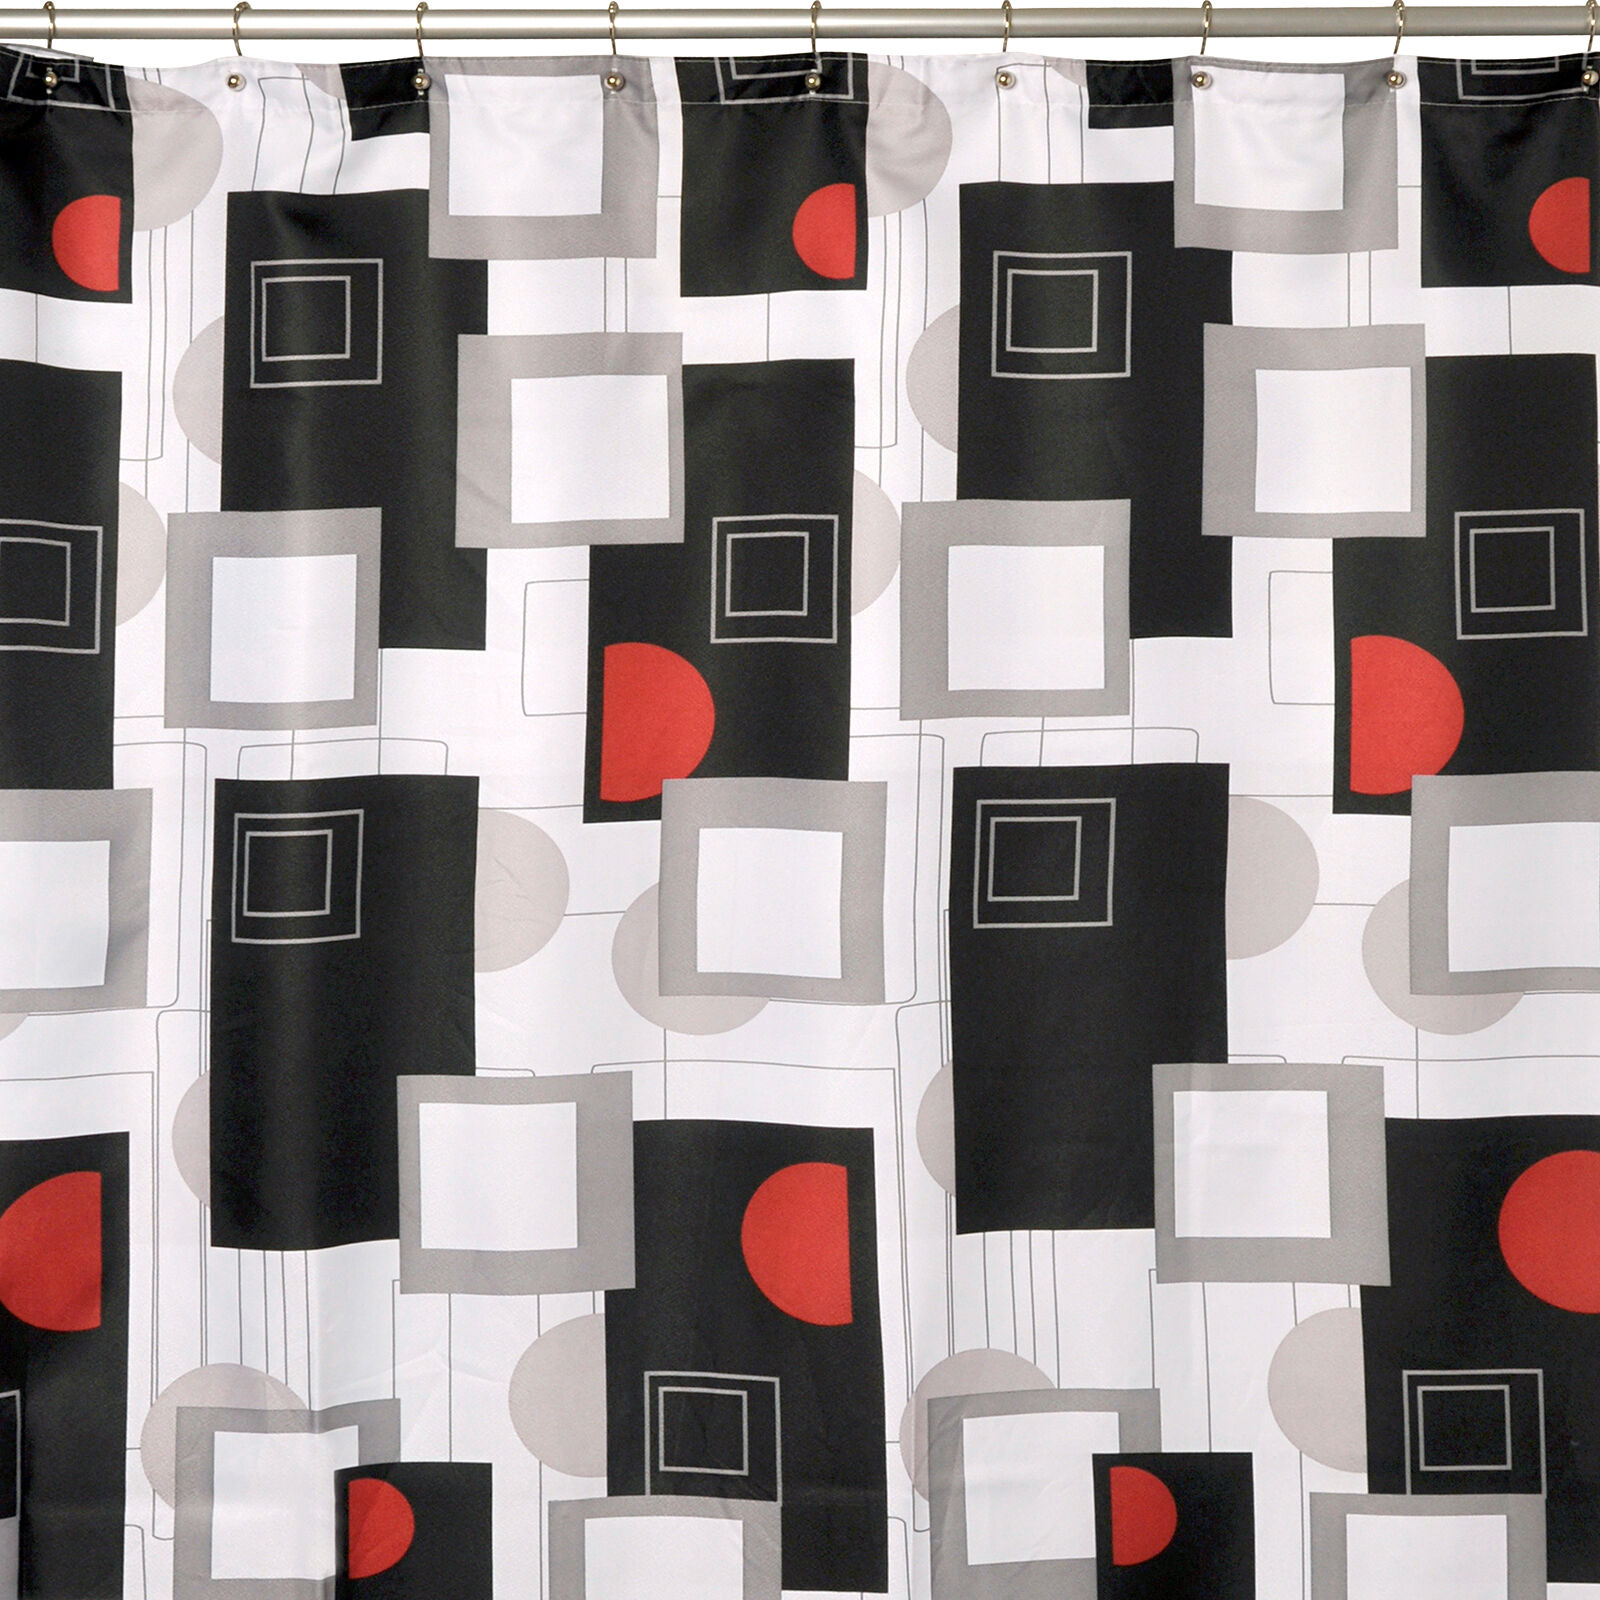 Black And Red Shower Curtain Black Red Gray Shower Curtain Black Dark Red  Shower Curtain Mobroi comRed And Grey Shower Curtain  Mainstays Aperture Fabric Shower  . Red And Cream Shower Curtain. Home Design Ideas